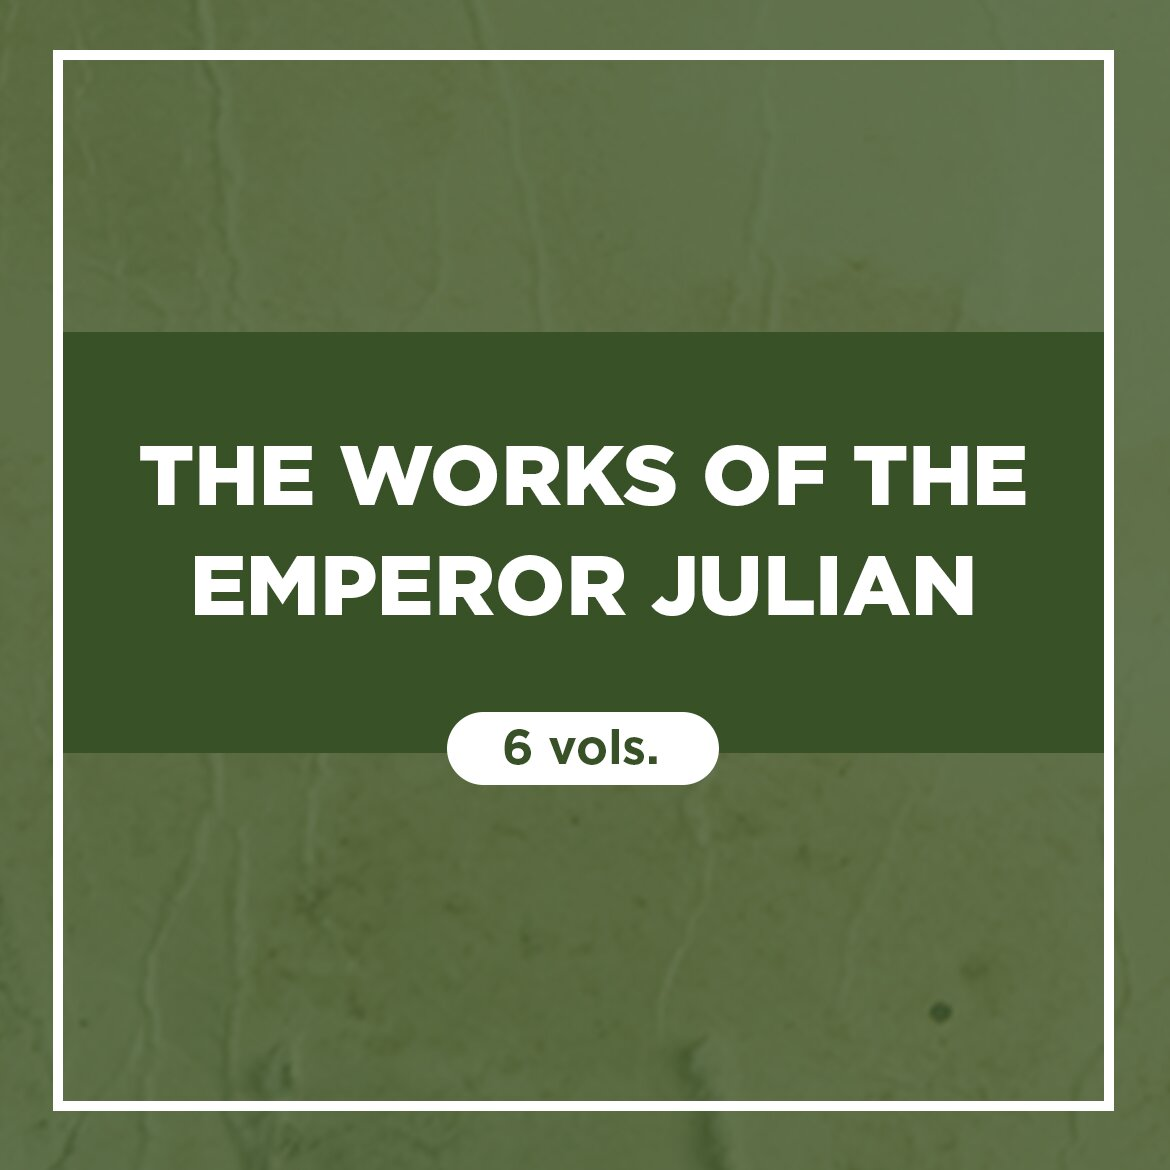 The Works of the Emperor Julian (6 vols.)